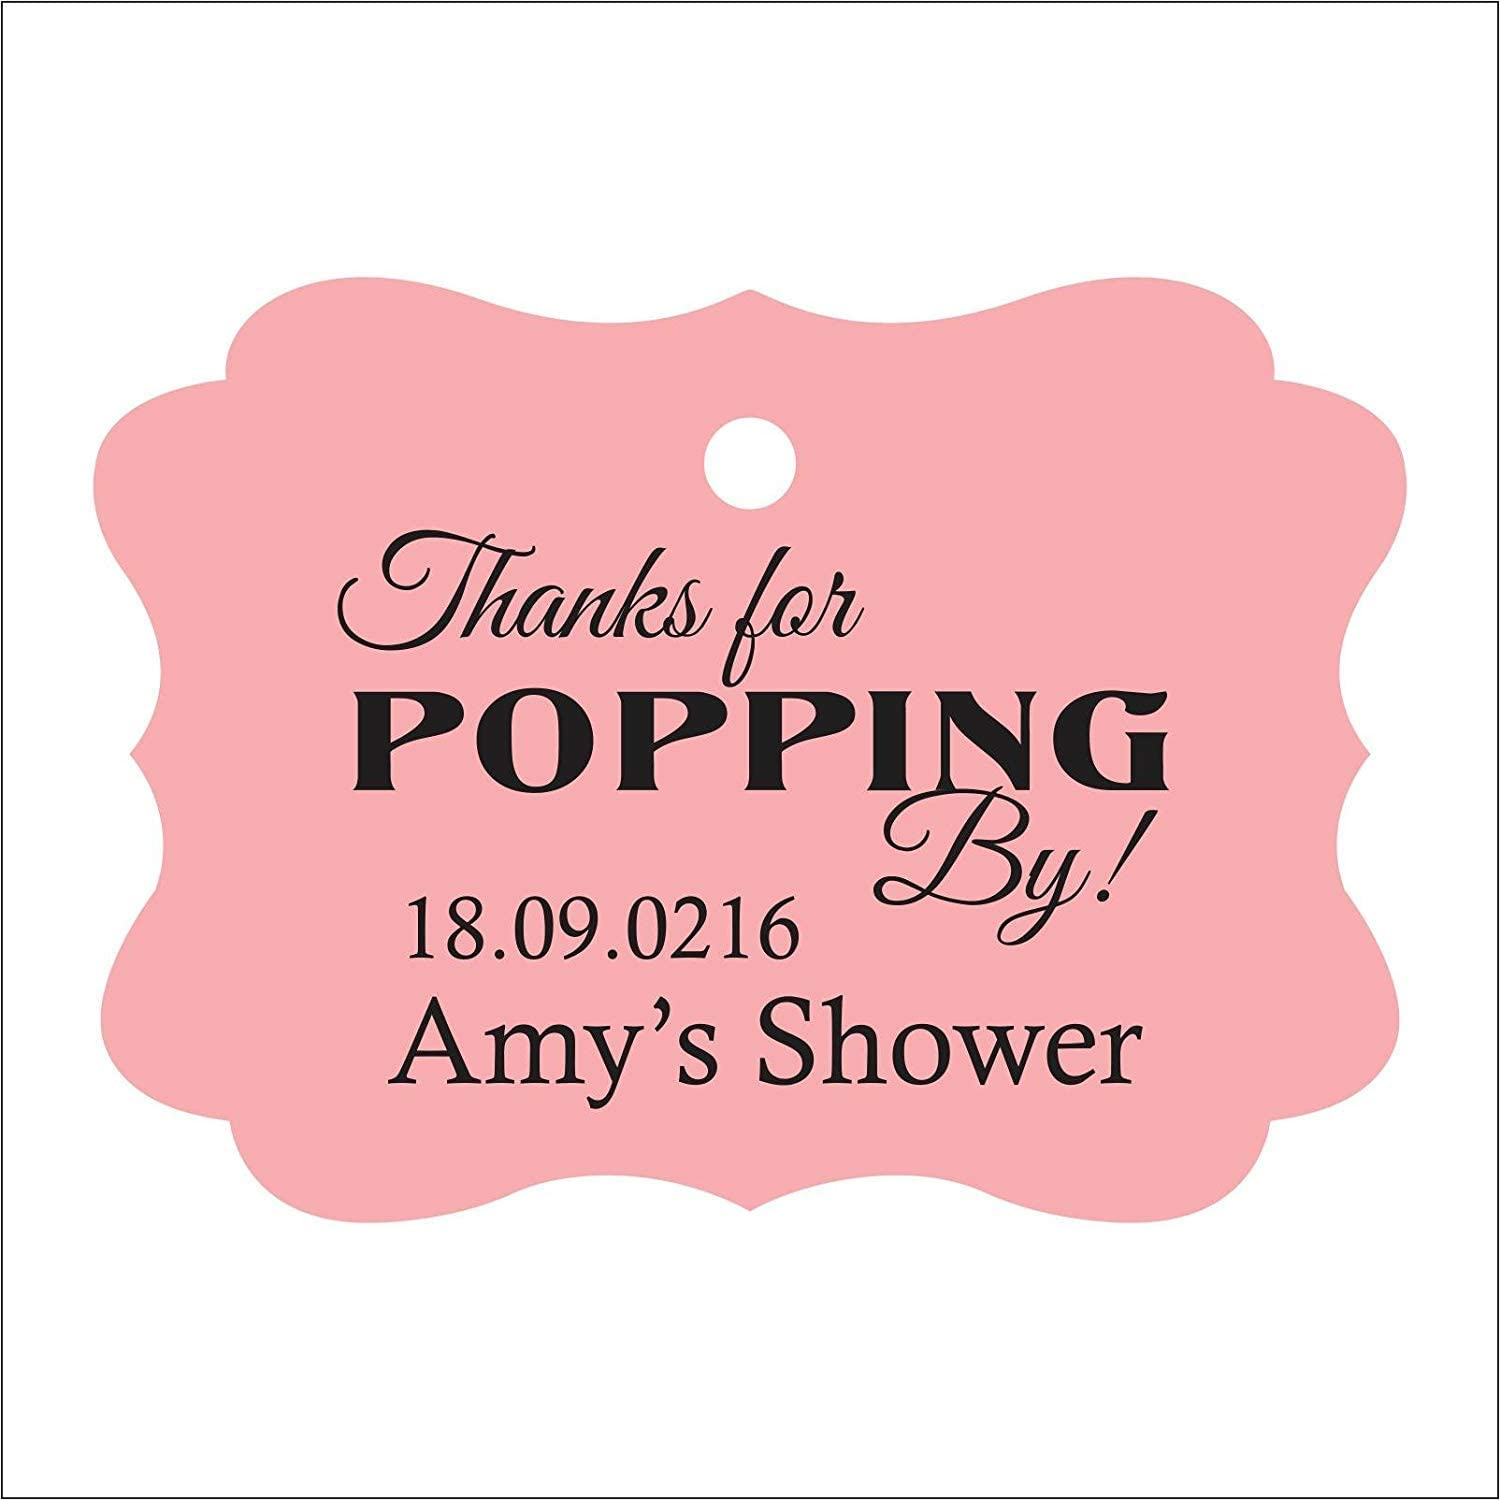 100 Personalized Custom Printed Cellophane Favor Bags